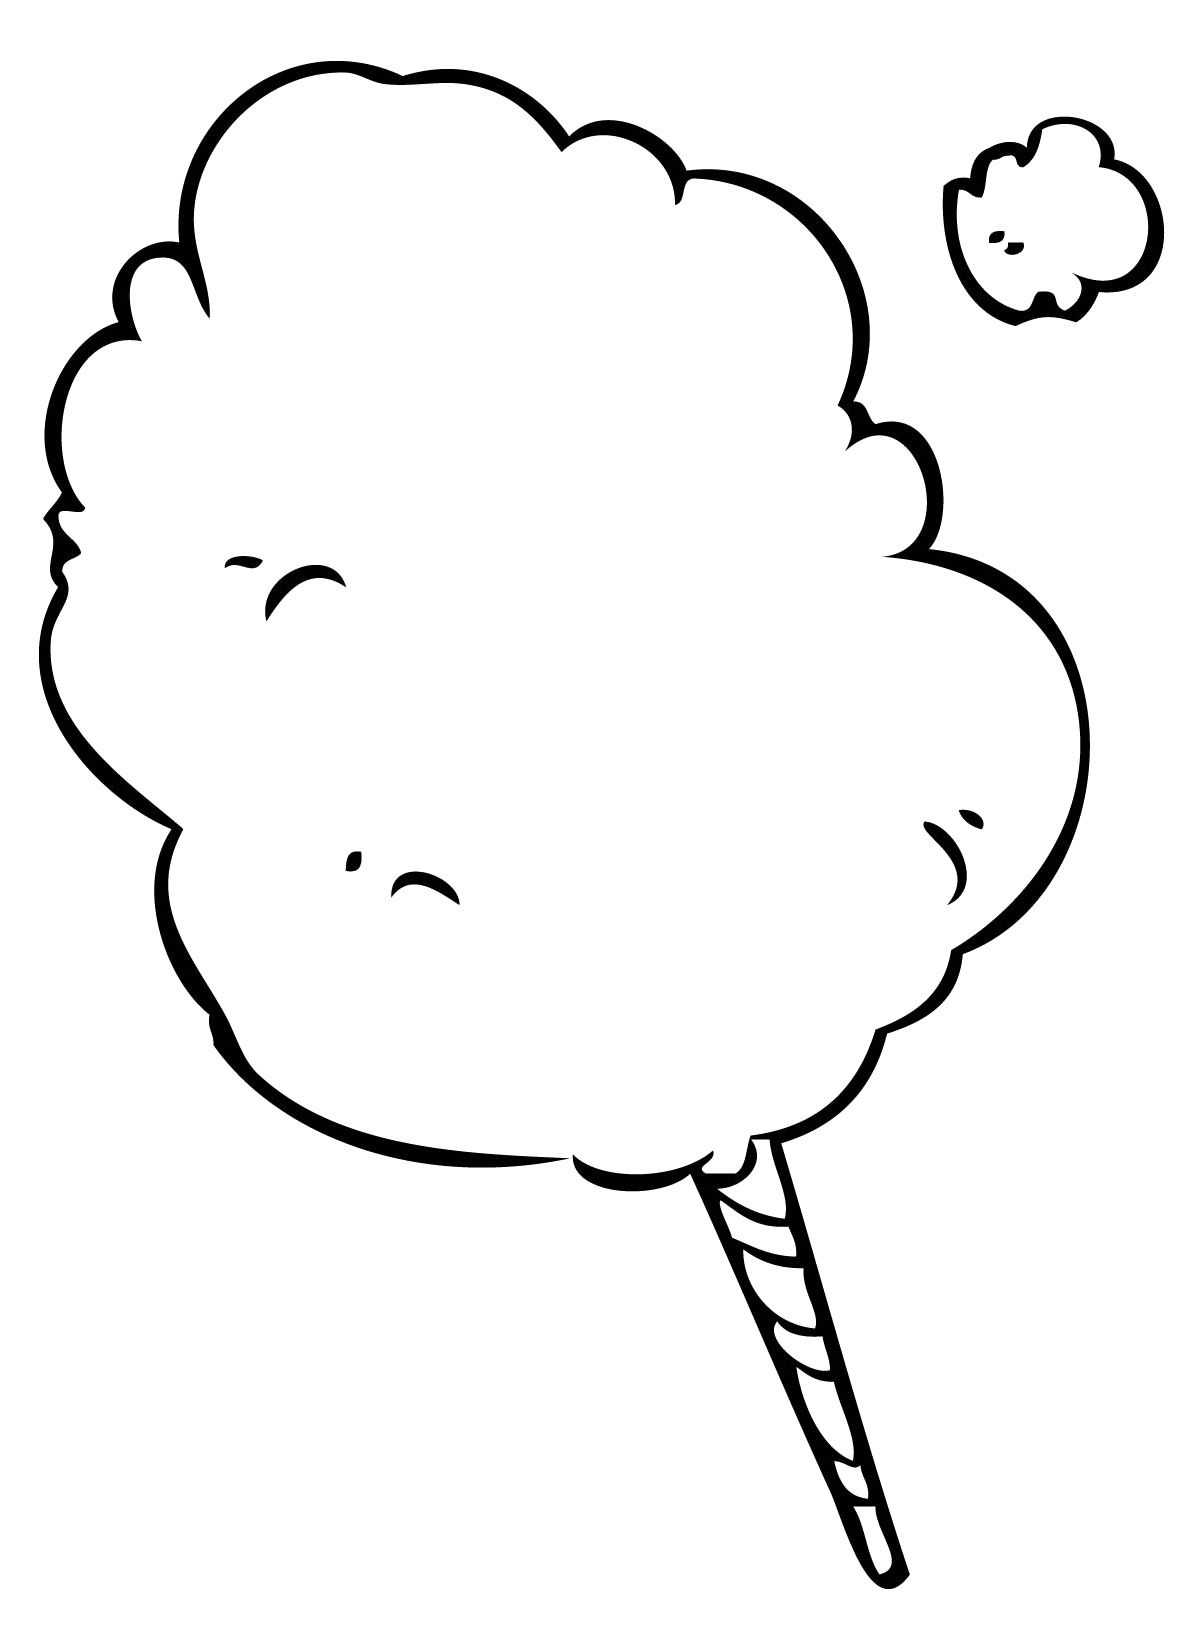 Cotton Candy Coloring Pages 74 Free Printable Coloring